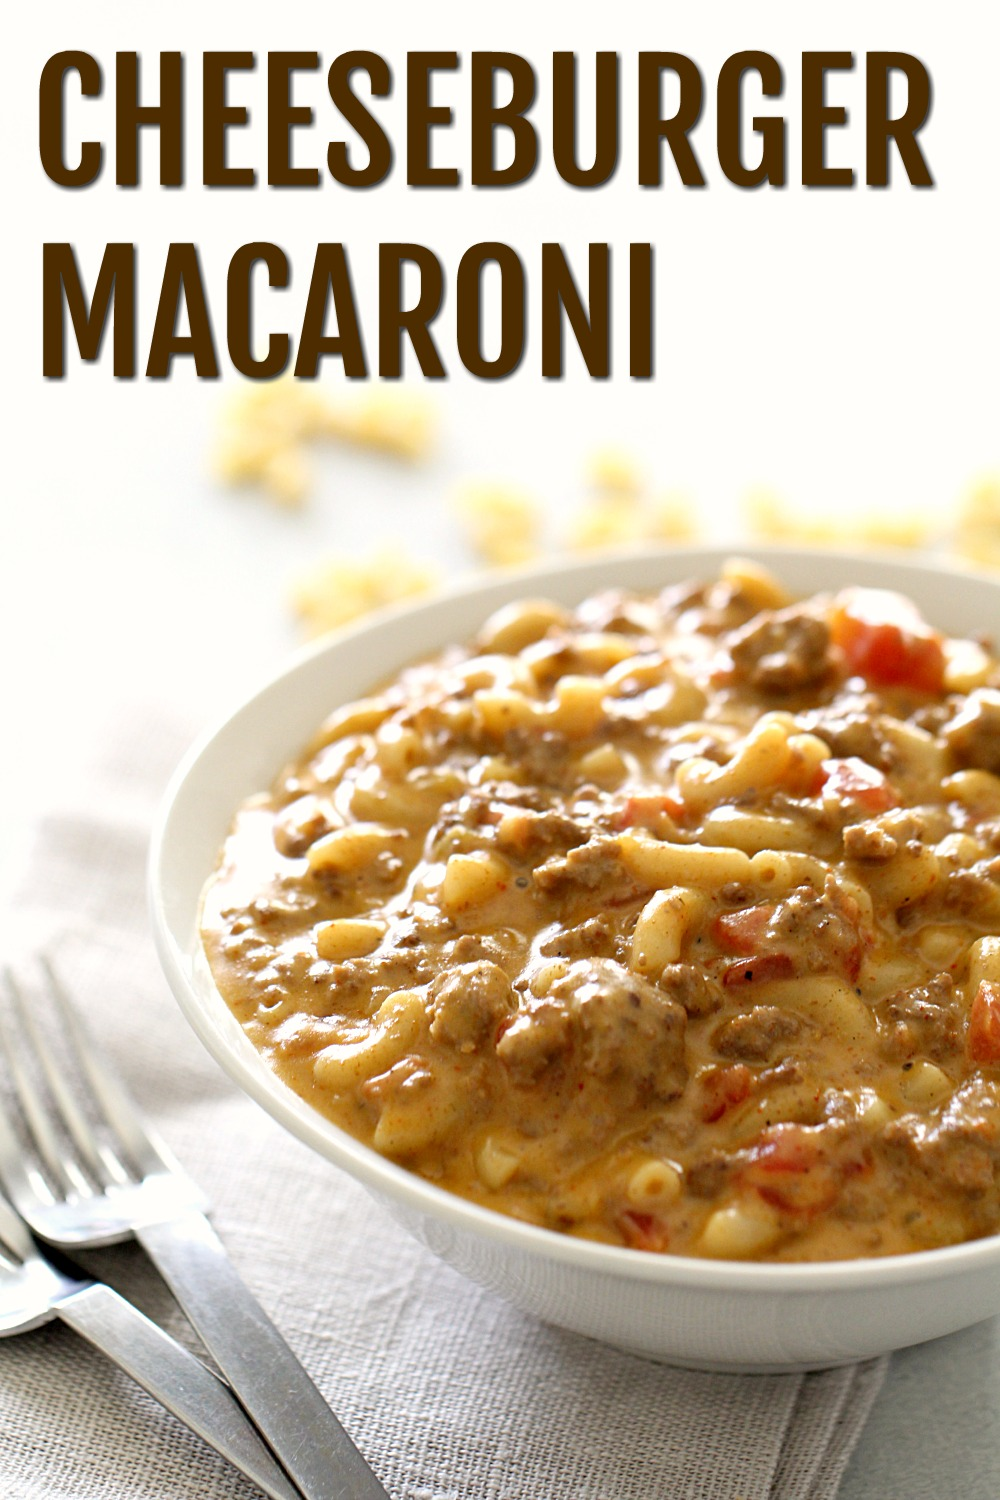 Cheeseburger Macaroni in a white bowl with a fork